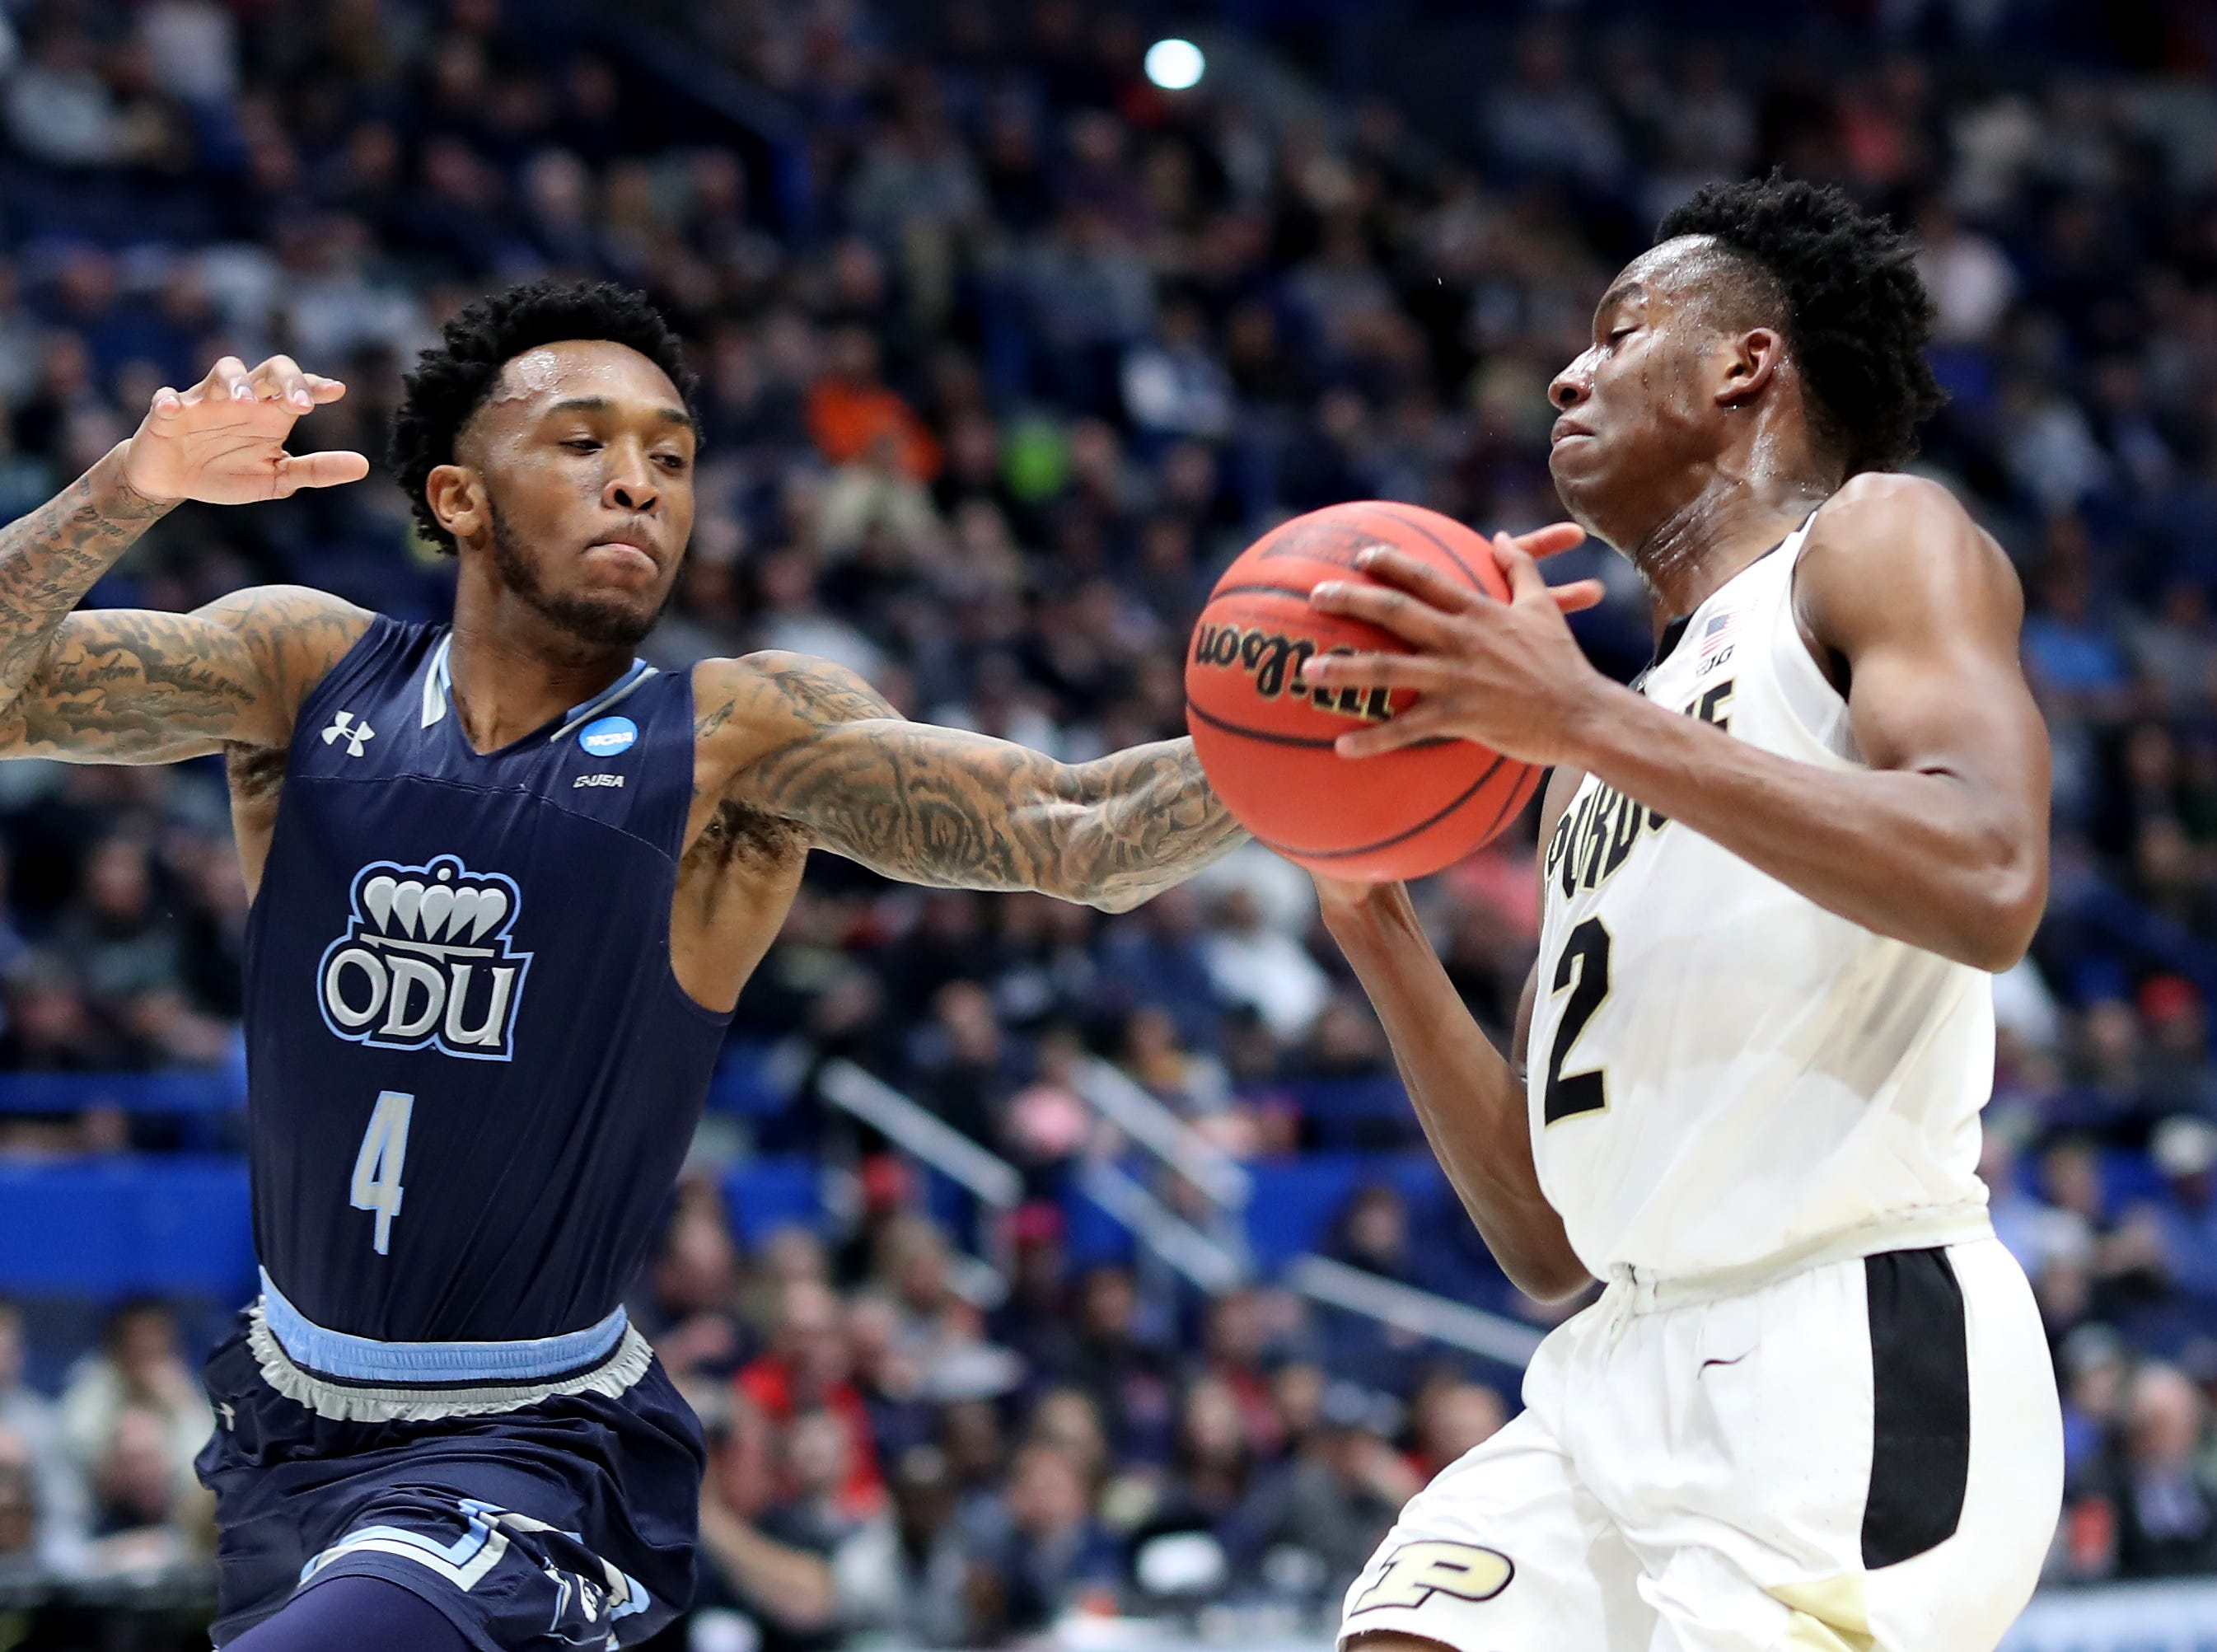 Eric Hunter Jr. #2 of the Purdue Boilermakers handles the ball against Ahmad Caver #4 of the Old Dominion Monarchs in the first half during the 2019 NCAA Men's Basketball Tournament at XL Center on March 21, 2019 in Hartford, Connecticut.